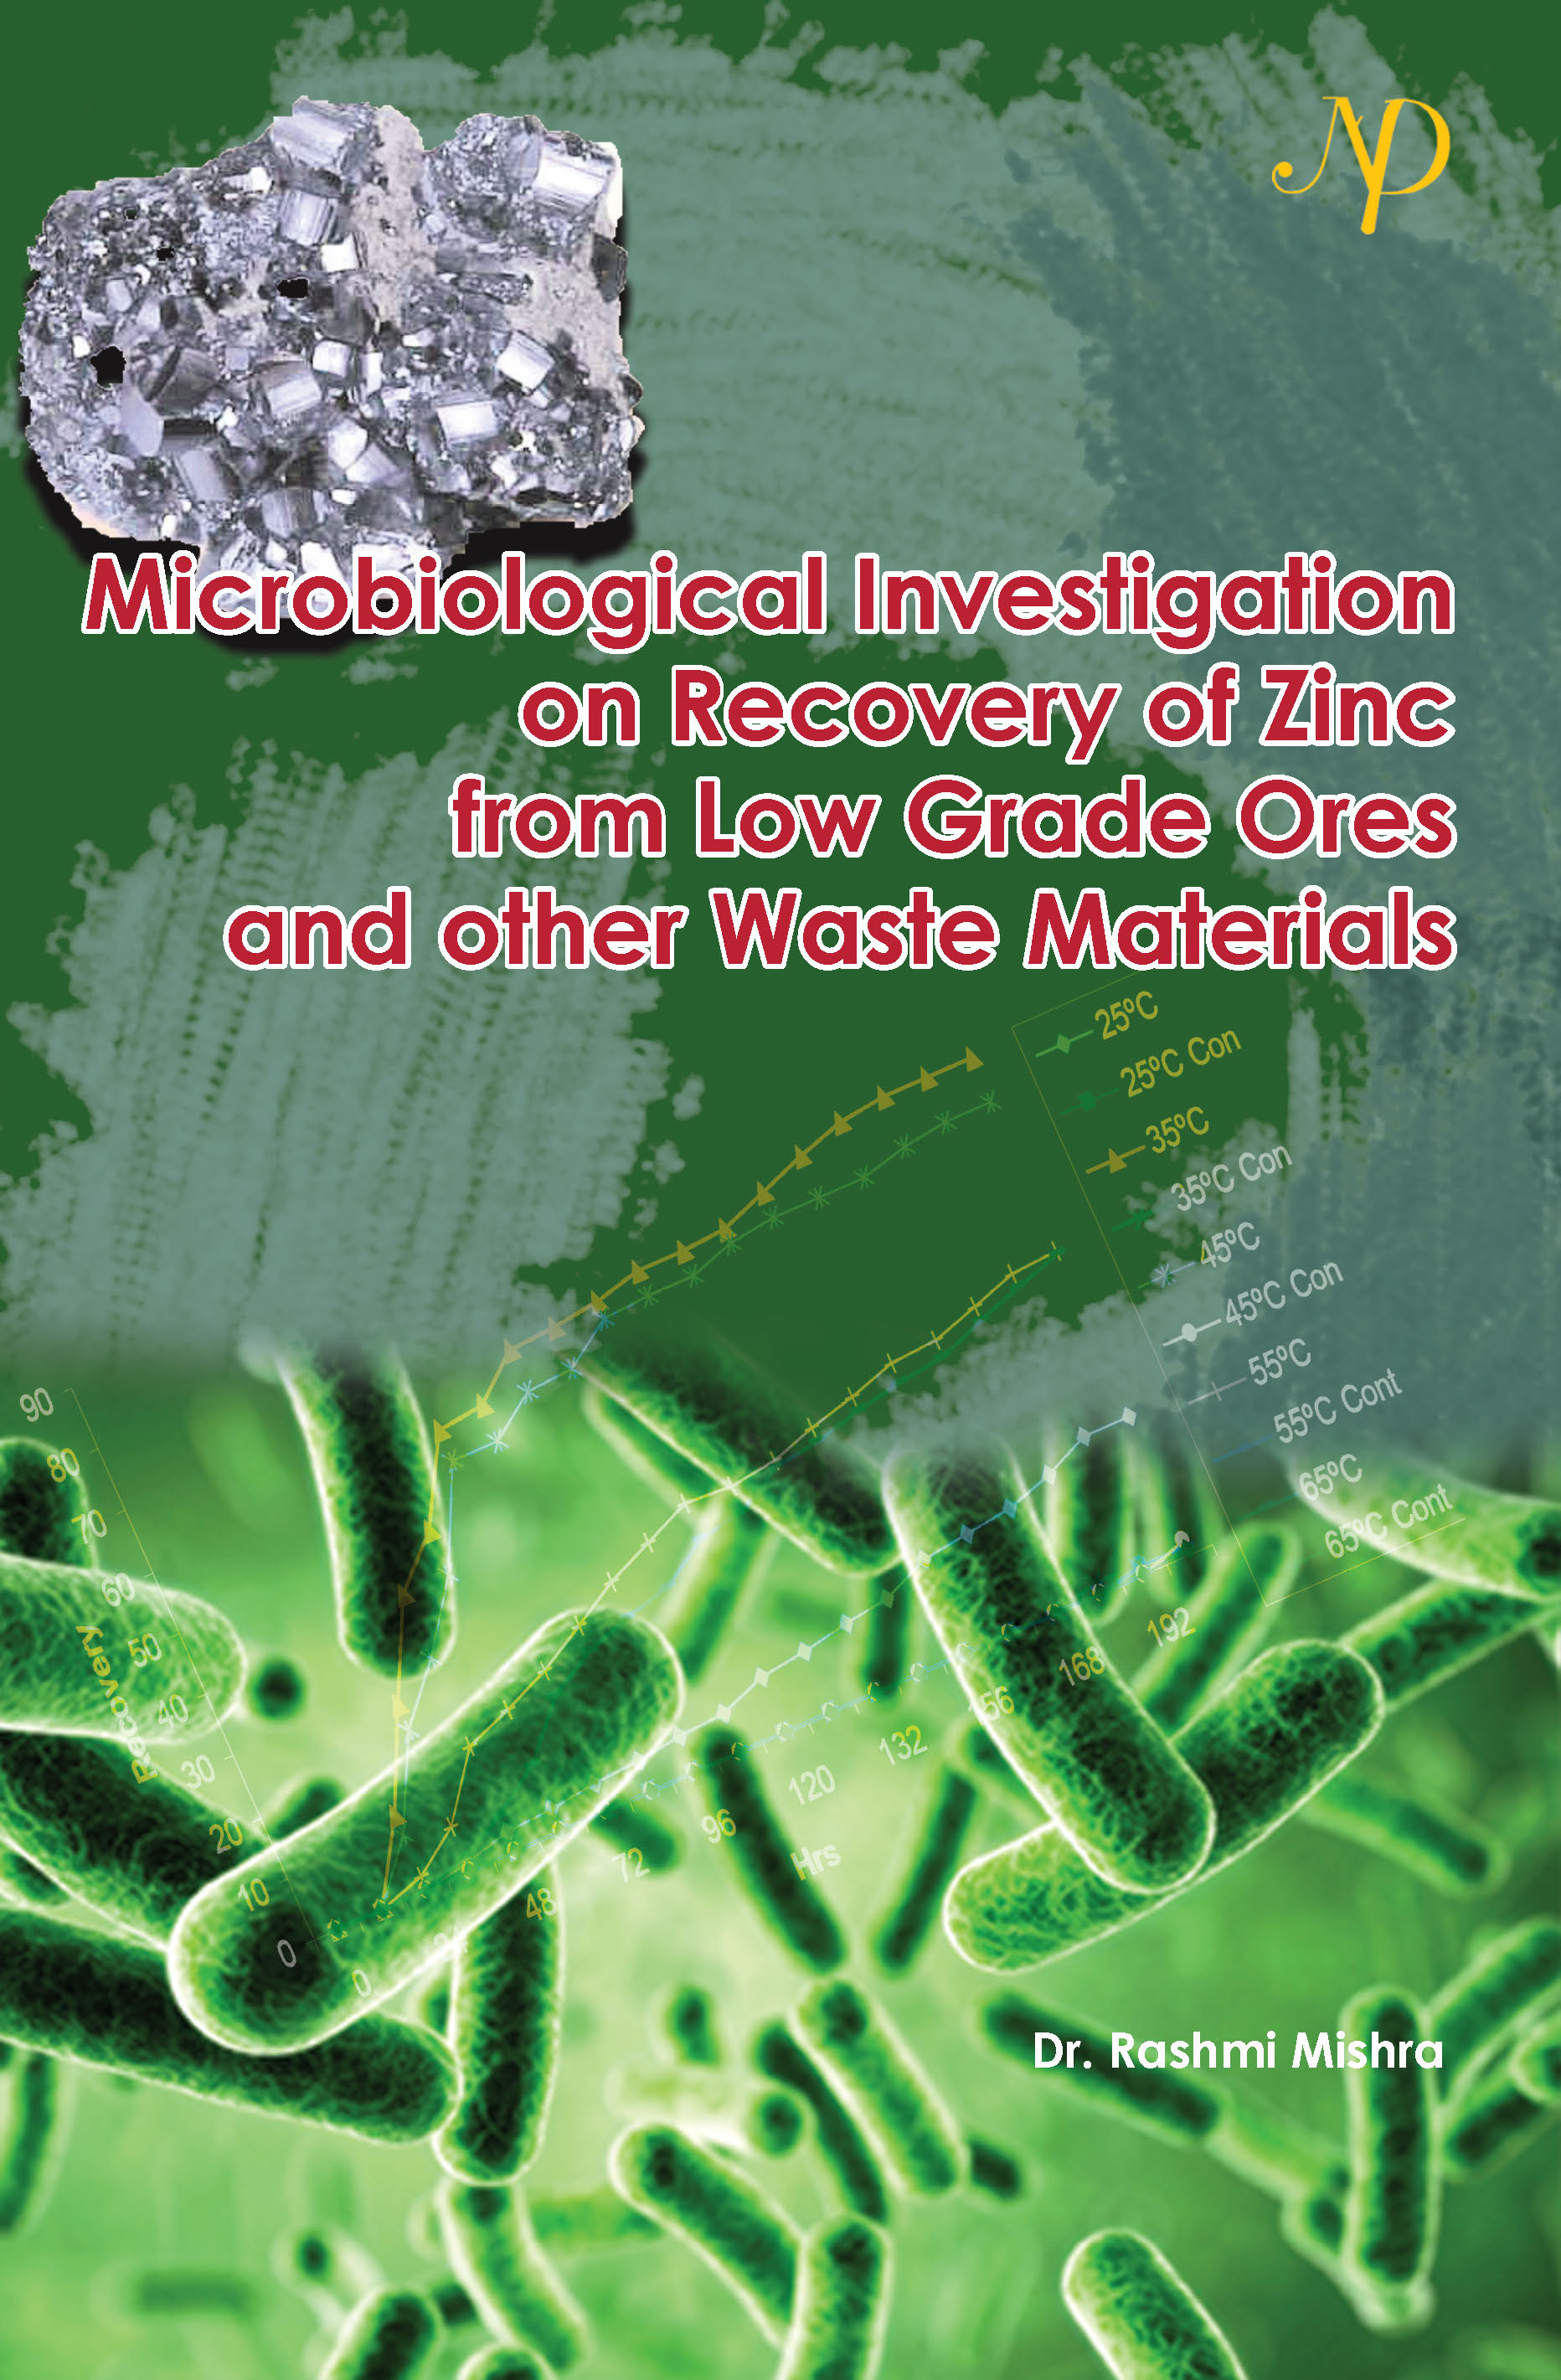 Microbiological Investigation on Recovery of Zinc from Low Grade Ores and other Waste Materials Cover final.jpg